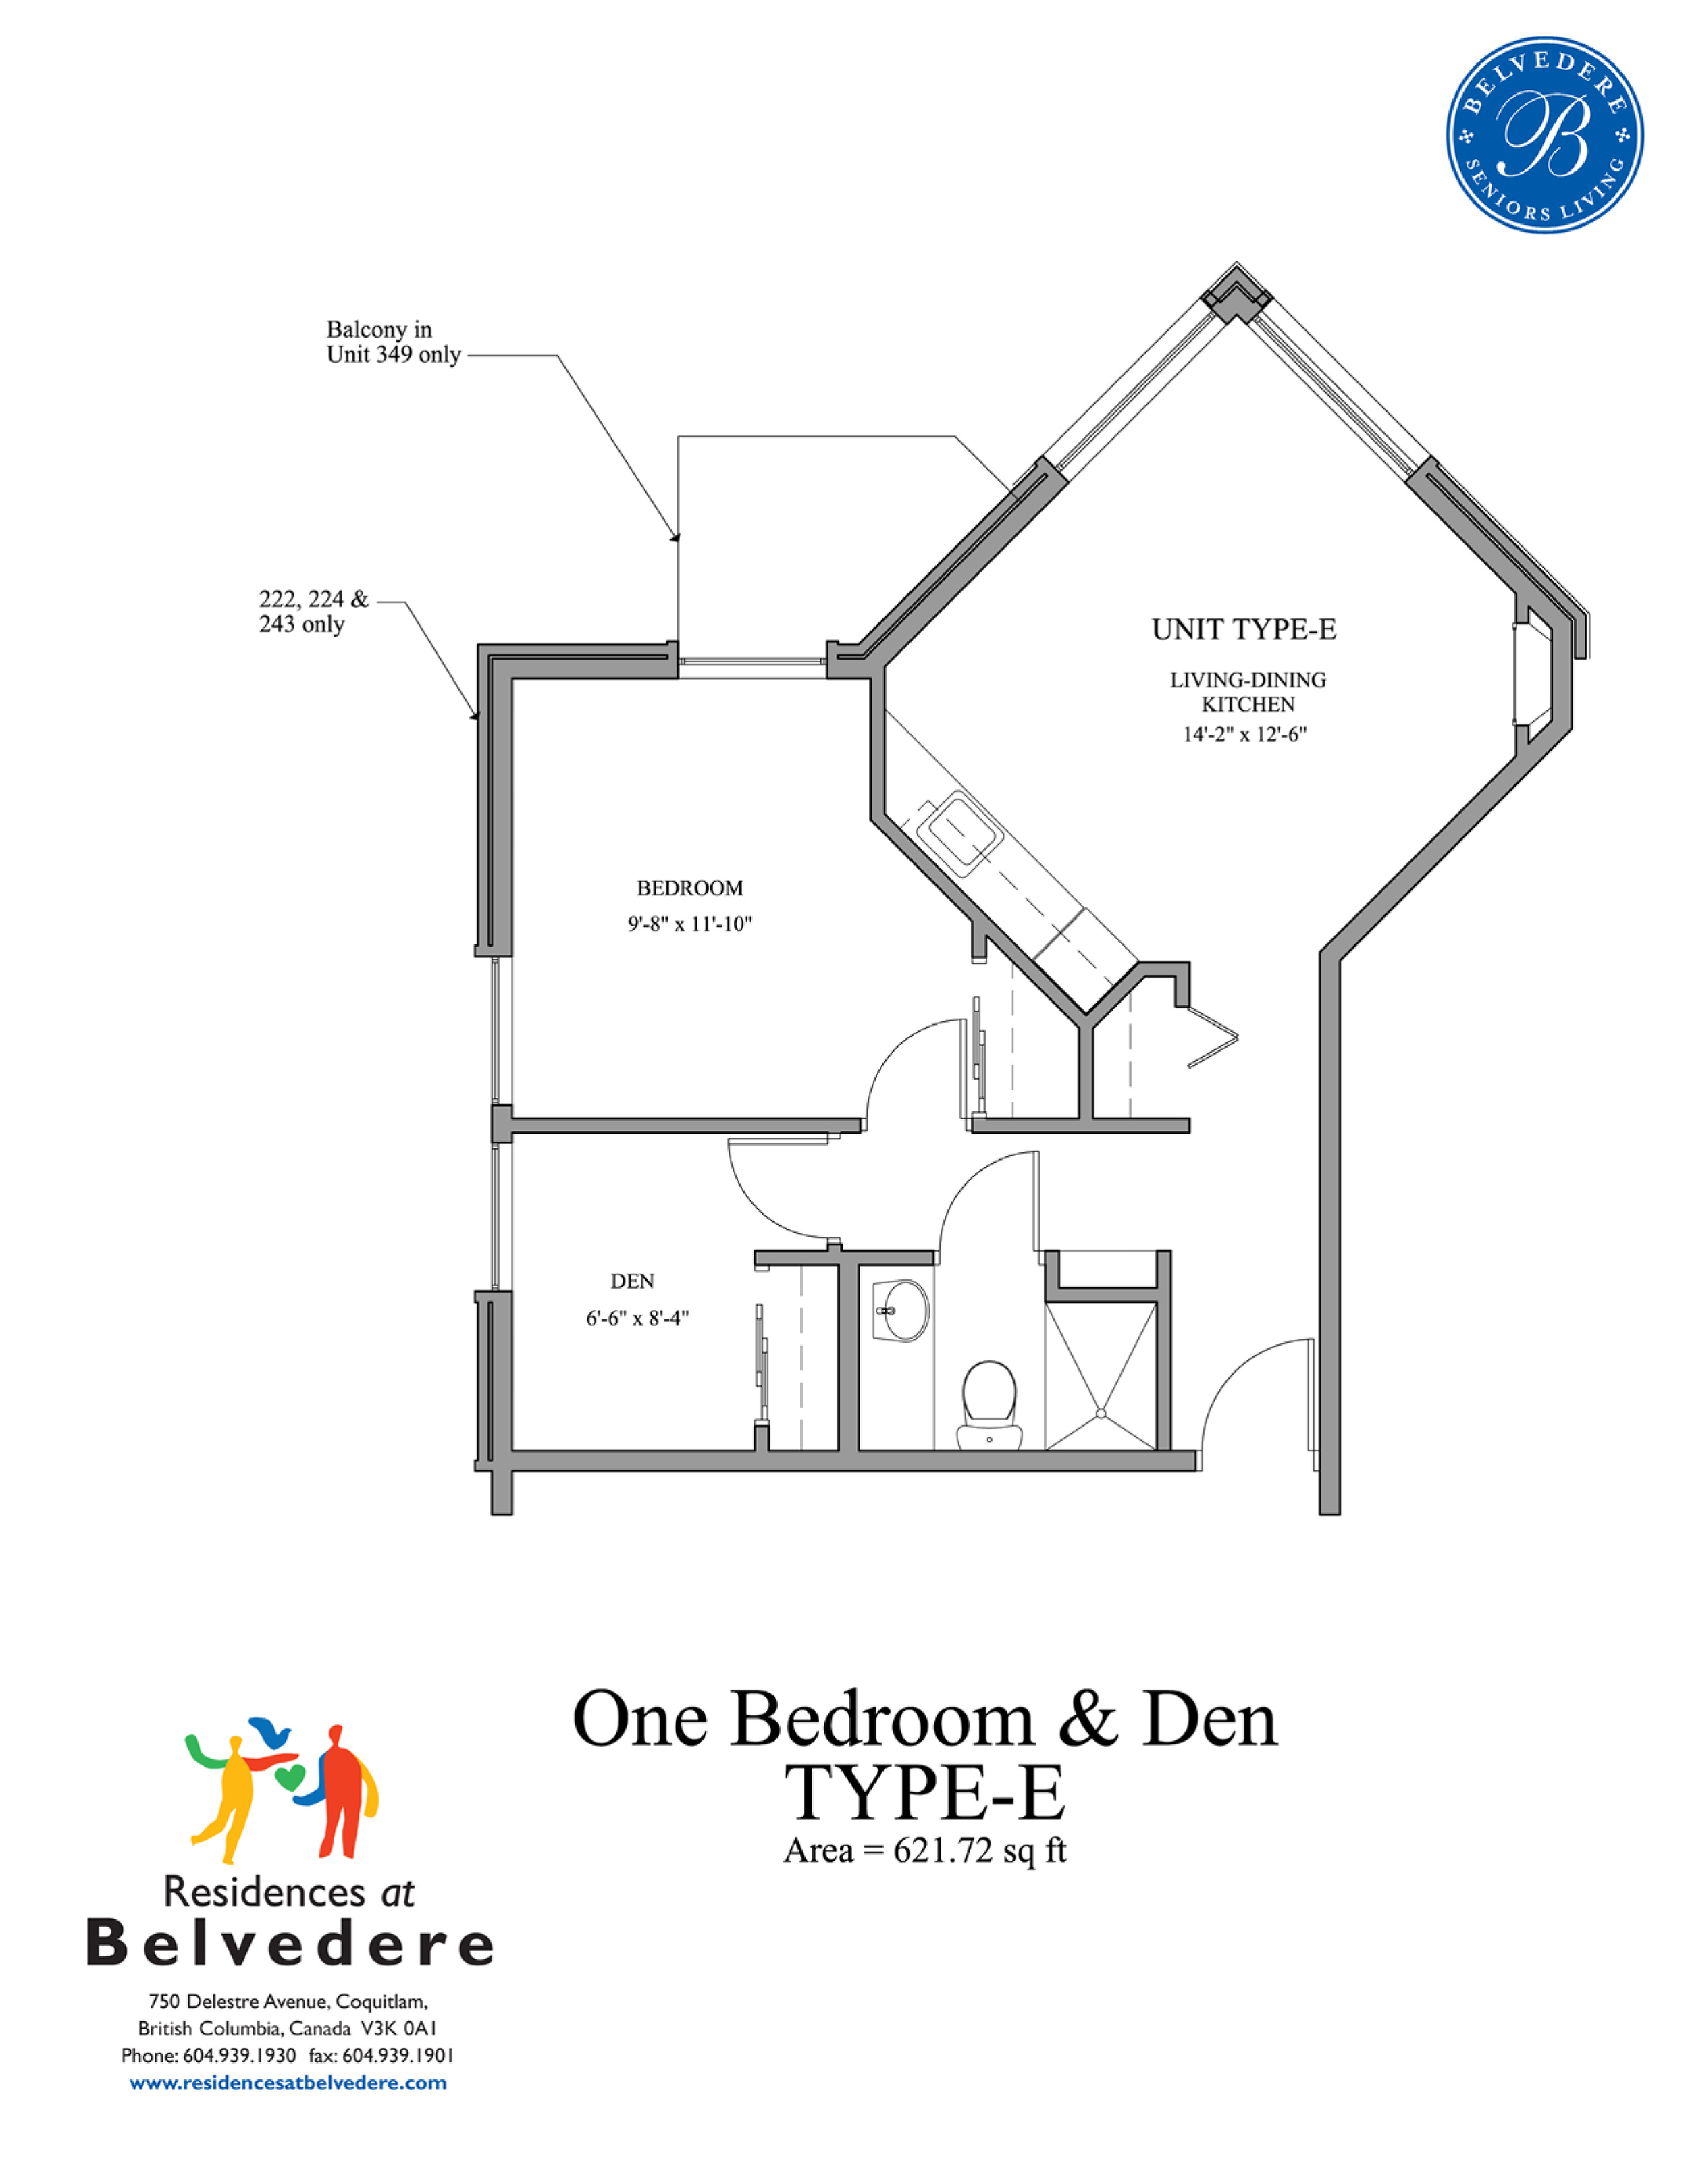 One Bedroom & Den TYPE-E